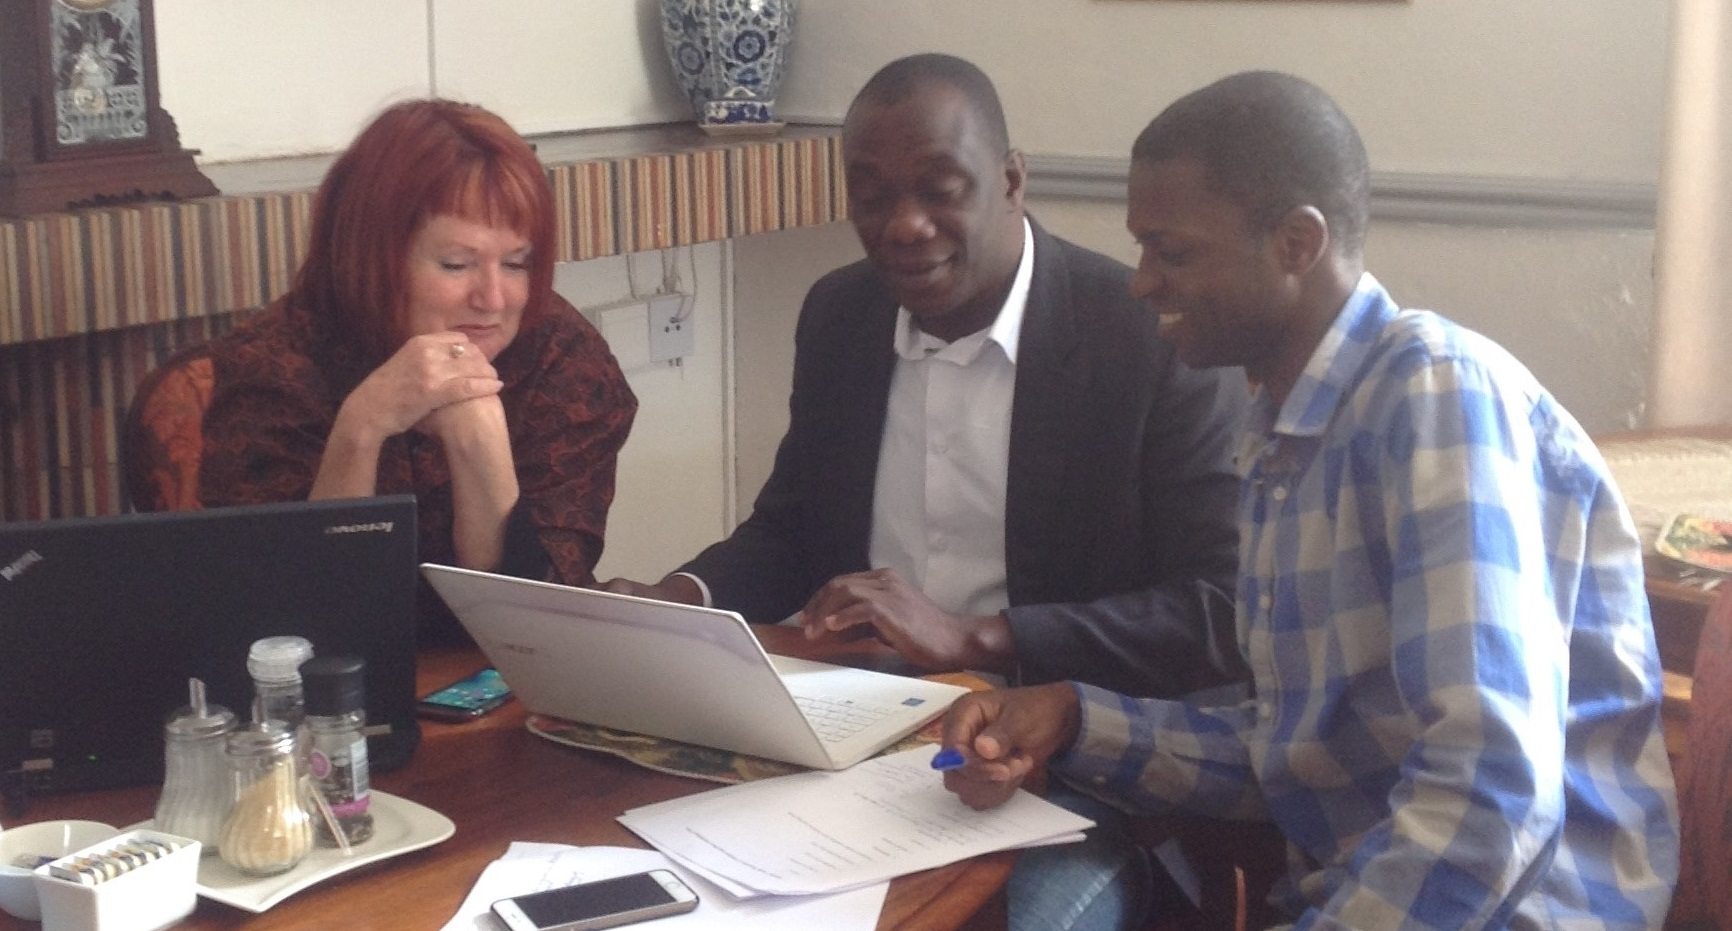 Diana Gibson and members of her Collaborative Working Group sitting around a laptop